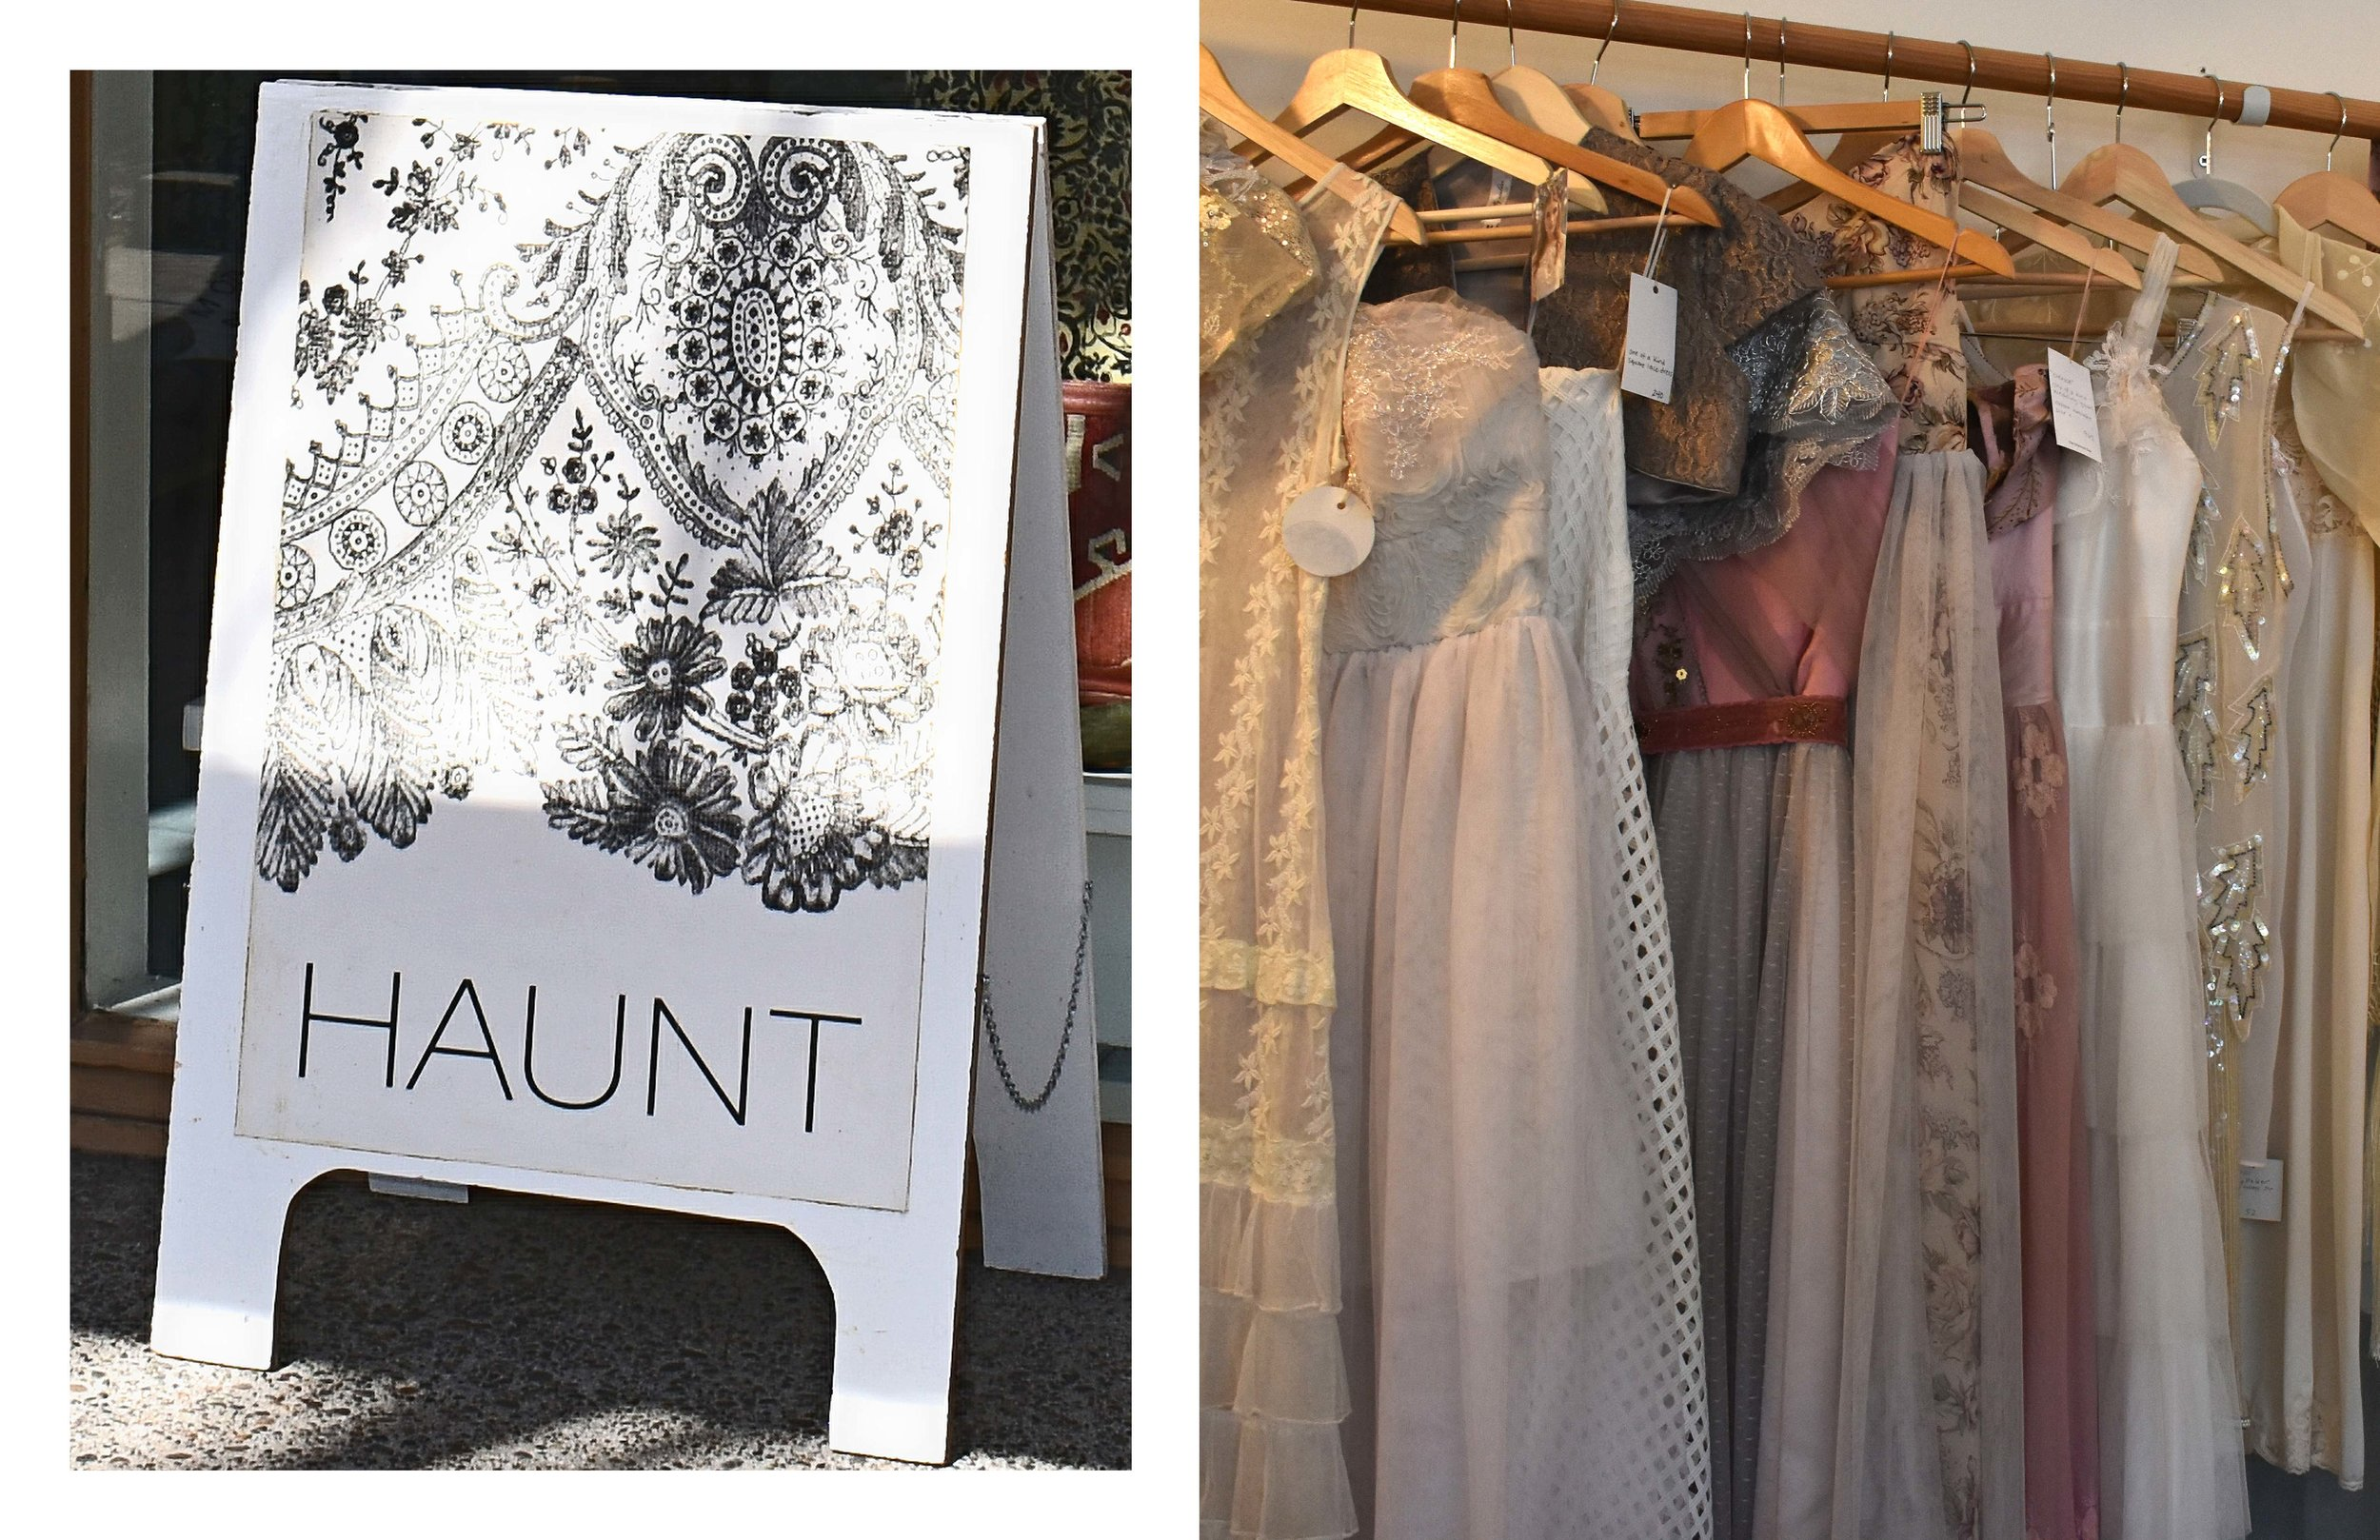 Coming across this little boutique called Haunt was so wonderful, as I immediately recognized it and a few designers from the boutique that were featured in an editorial called  D'annata  on Florum.  Check out the online fashion editorial shot in Portland, Oregon by  Evie Lane   HERE